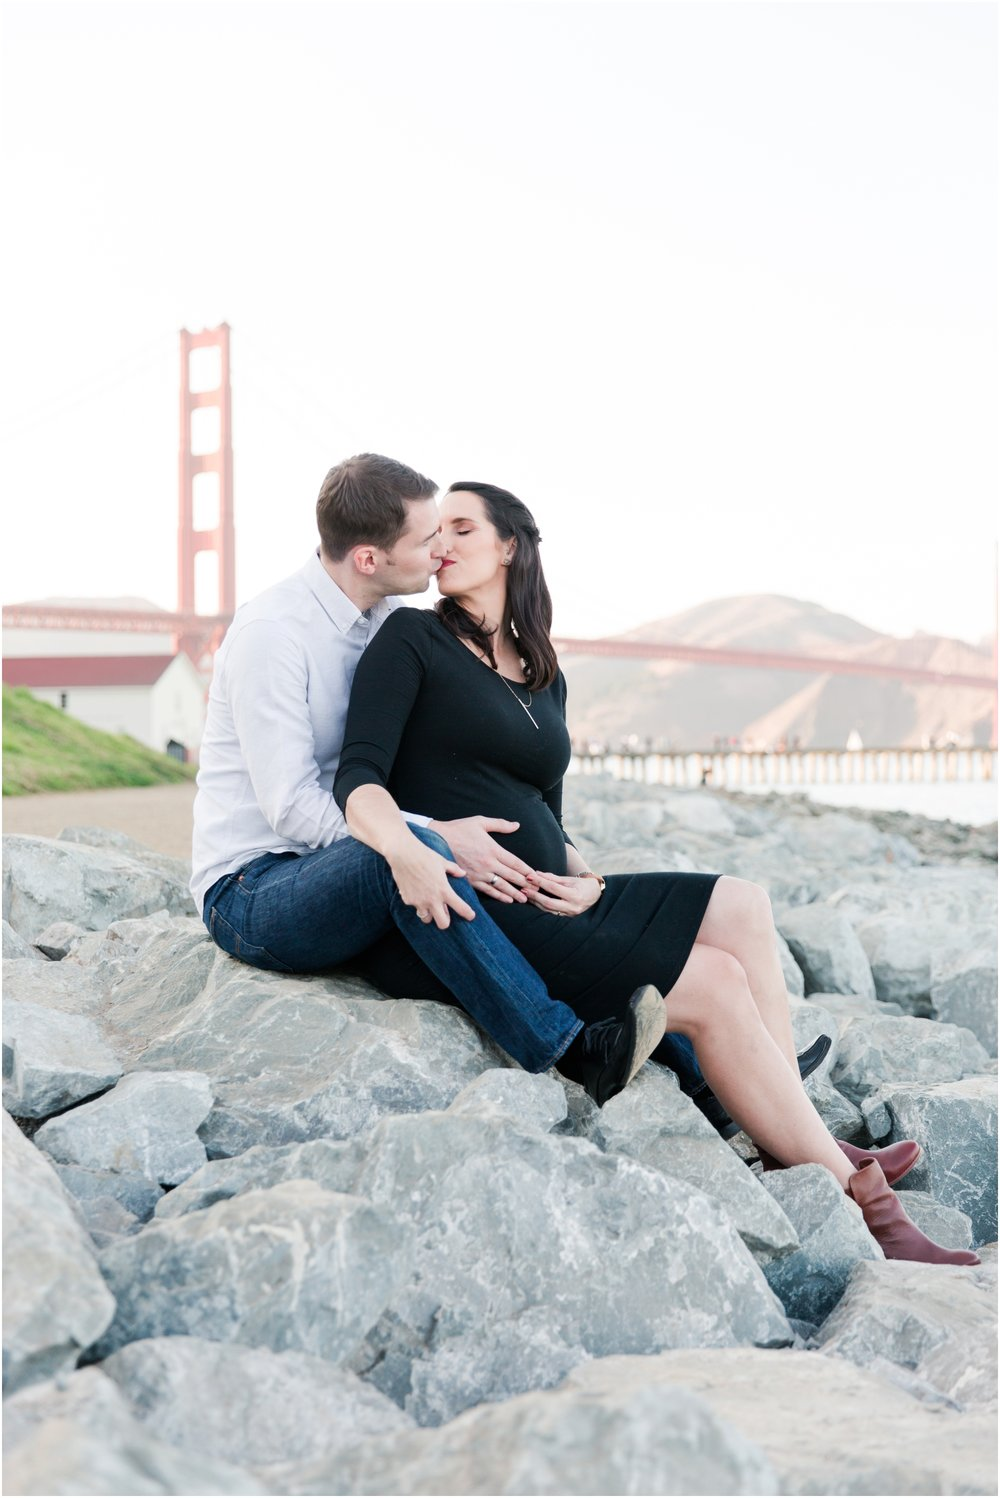 Crissy Field San Francisco maternity pictures by Briana Calderon Photography_0279.jpg